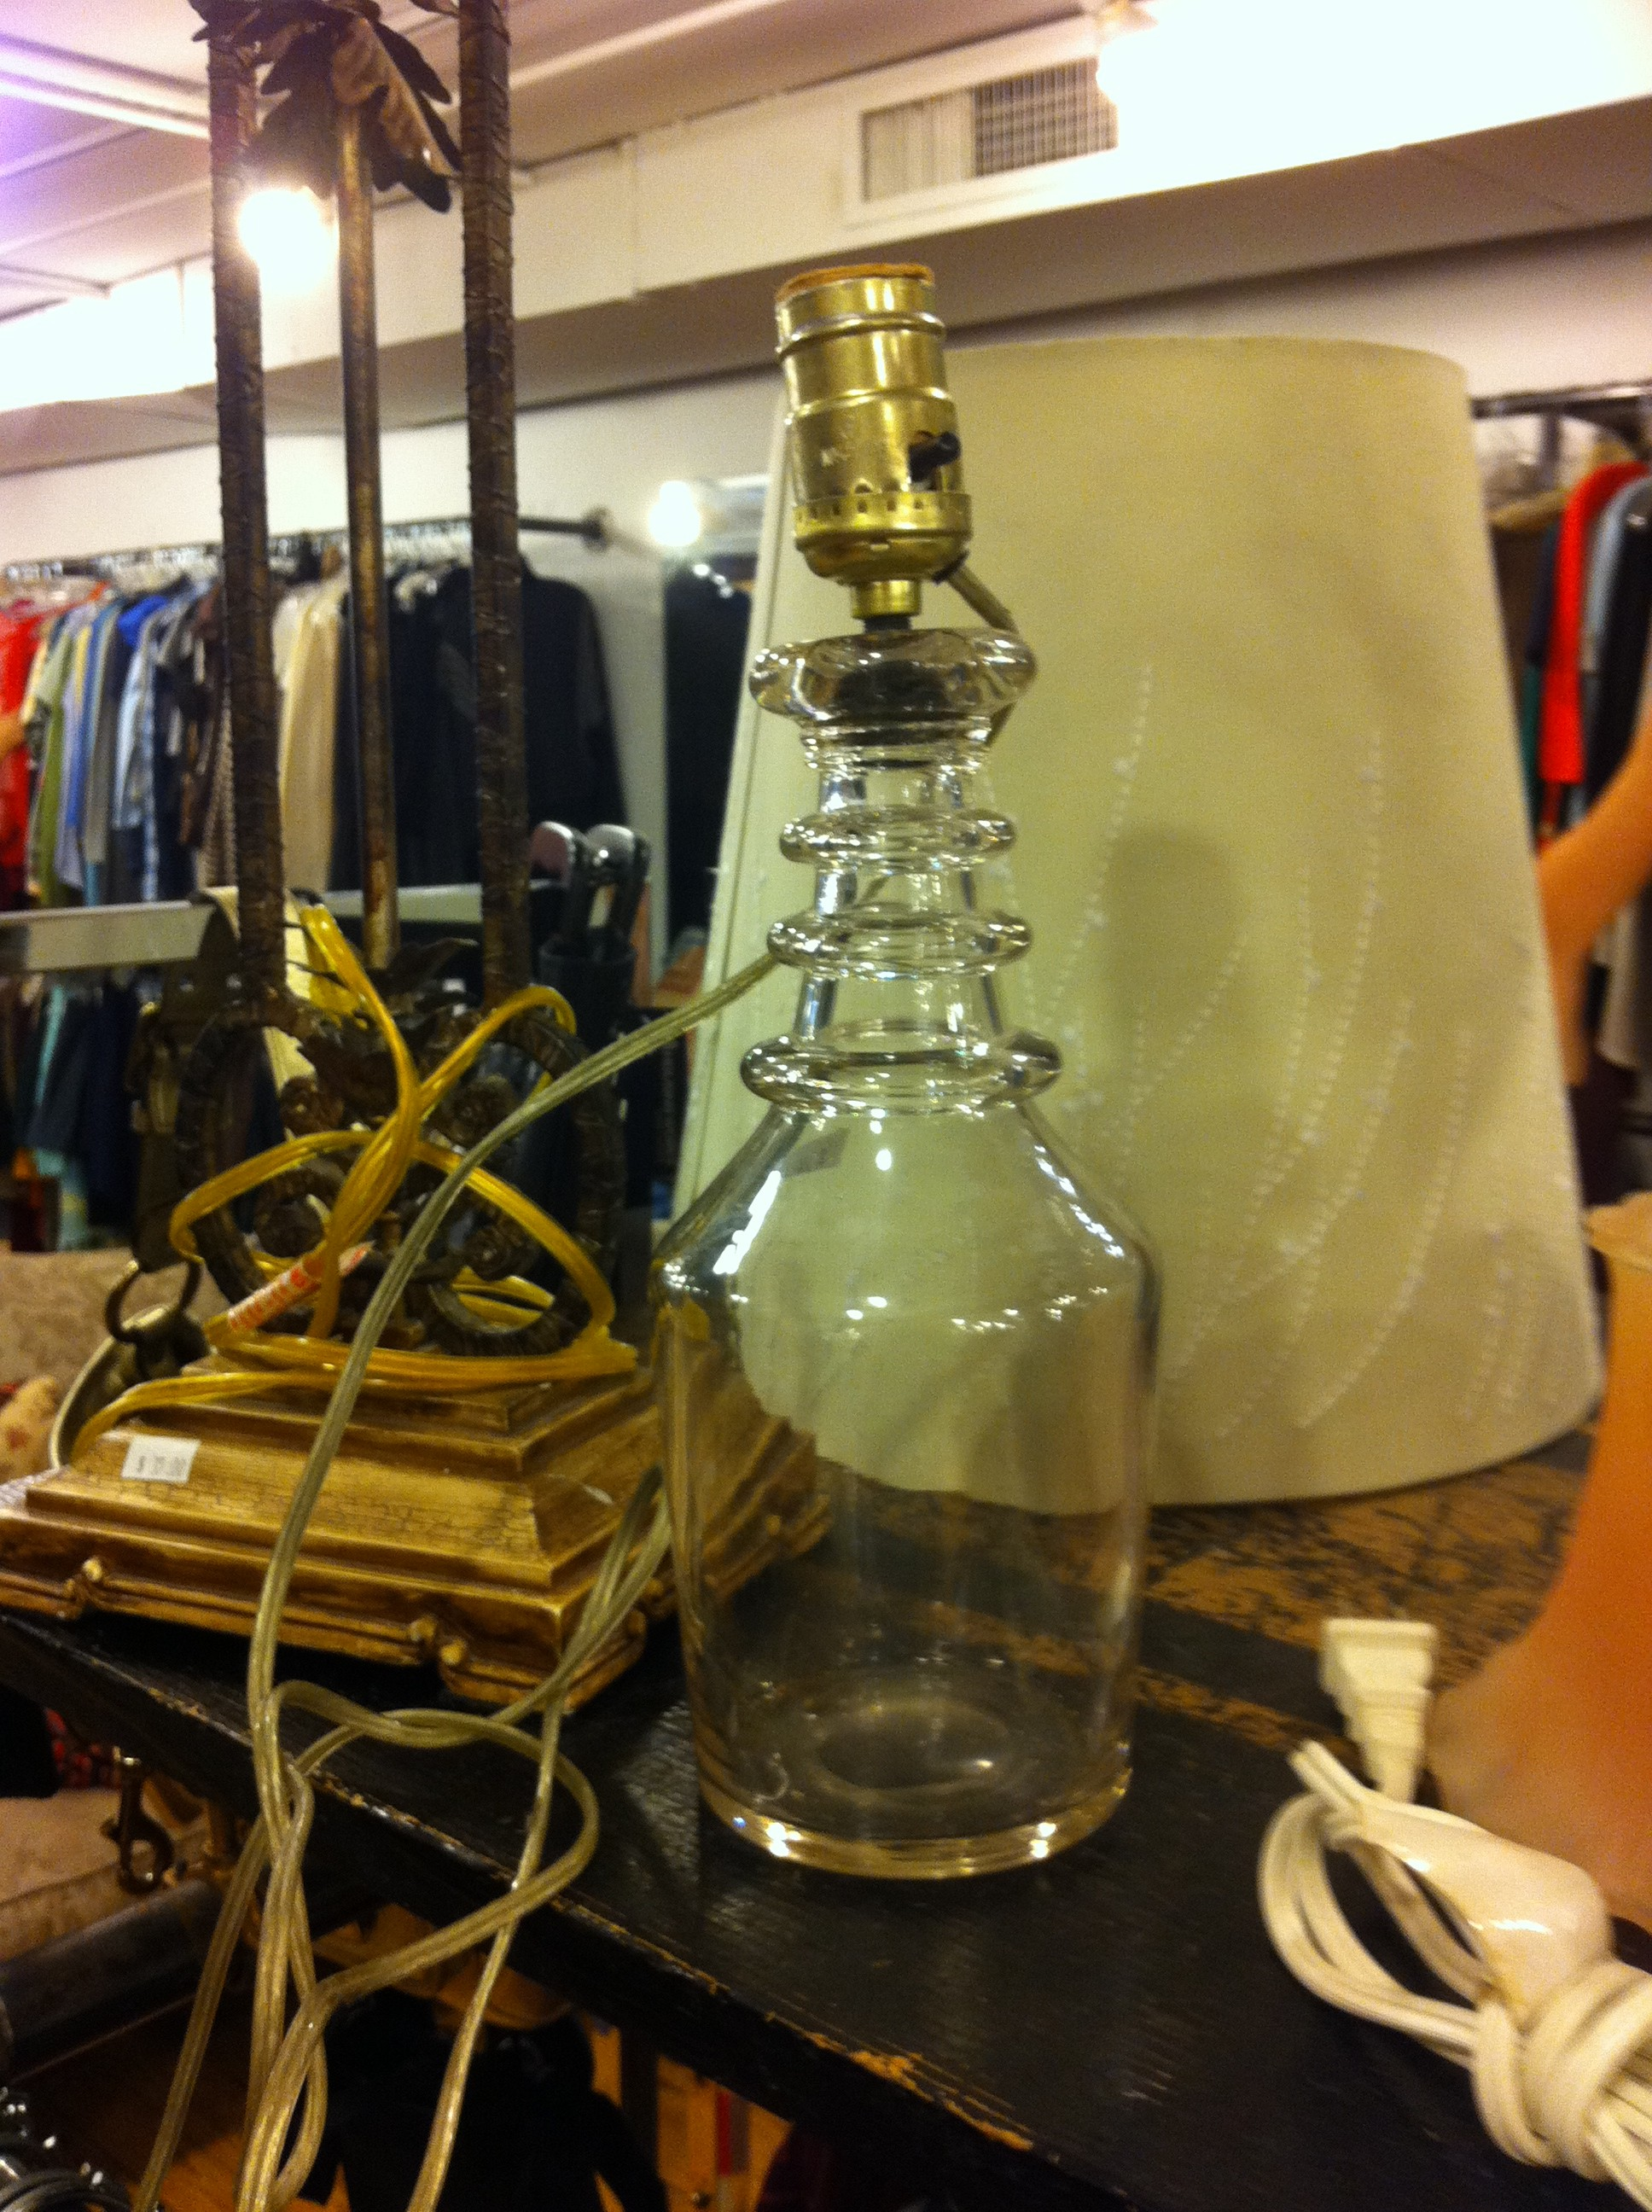 A pic of a clear glass small lamp in thrift shop